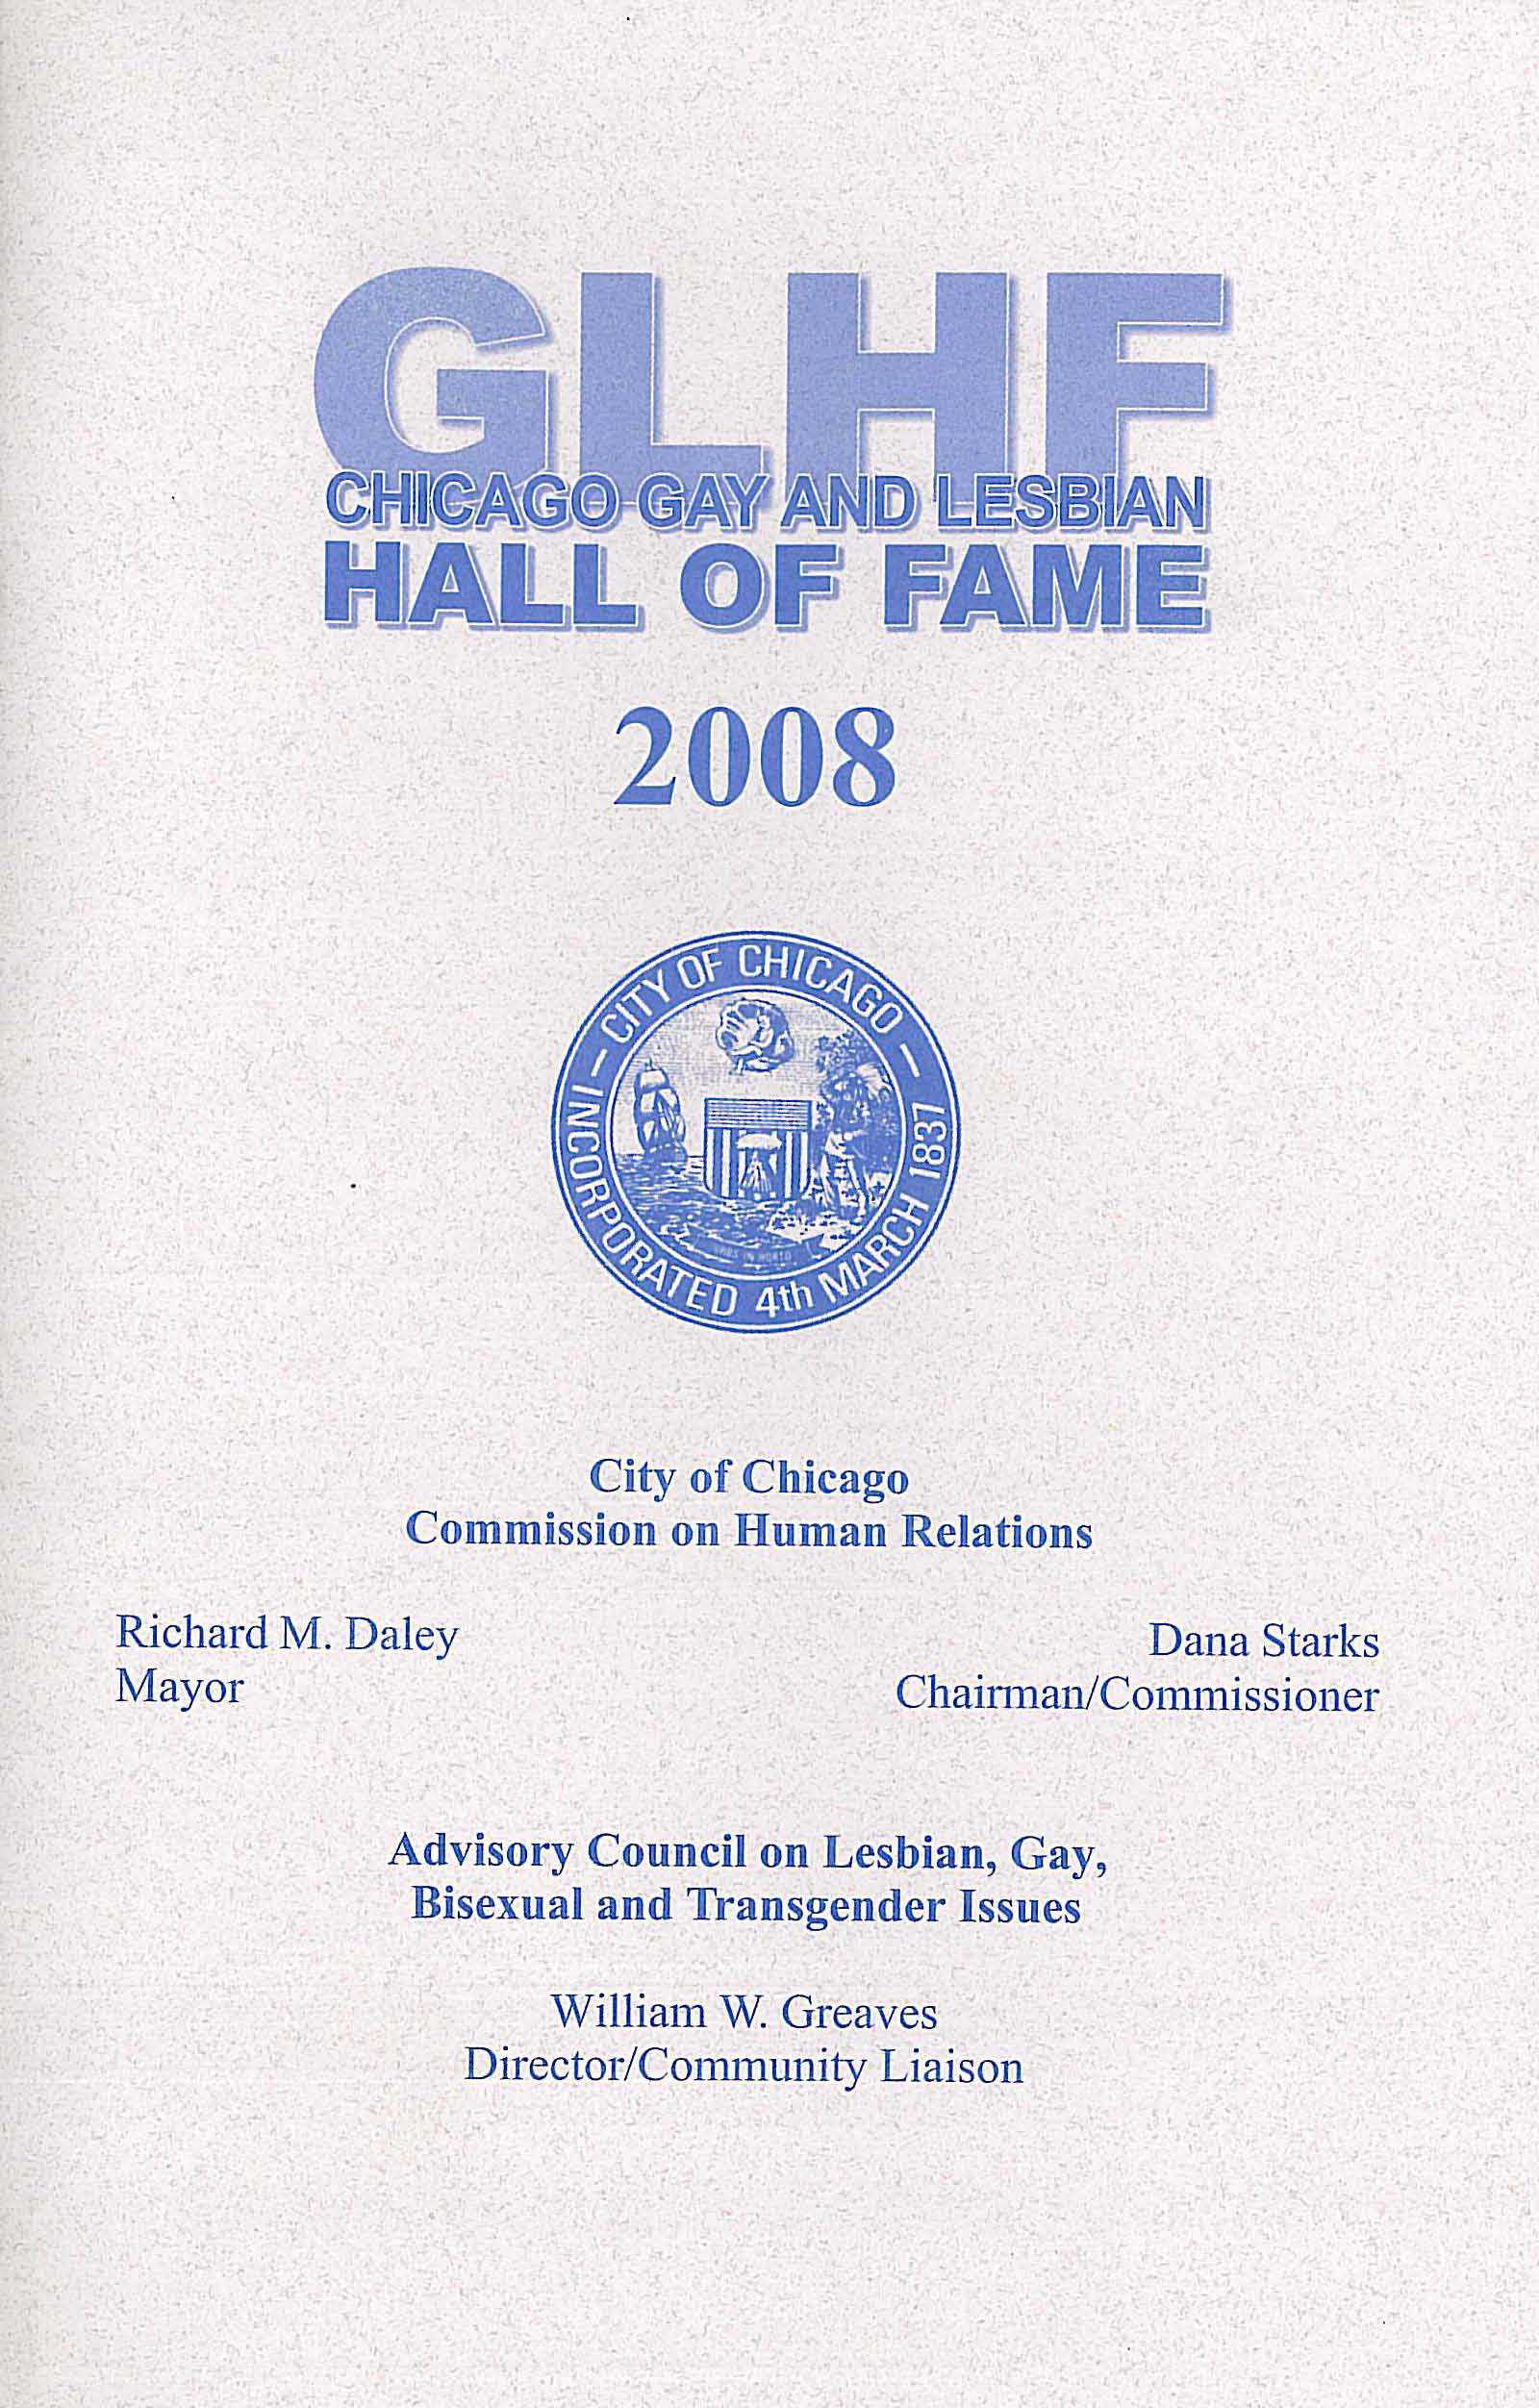 Chicago Gay and Lesbian Hall of Fame 2013